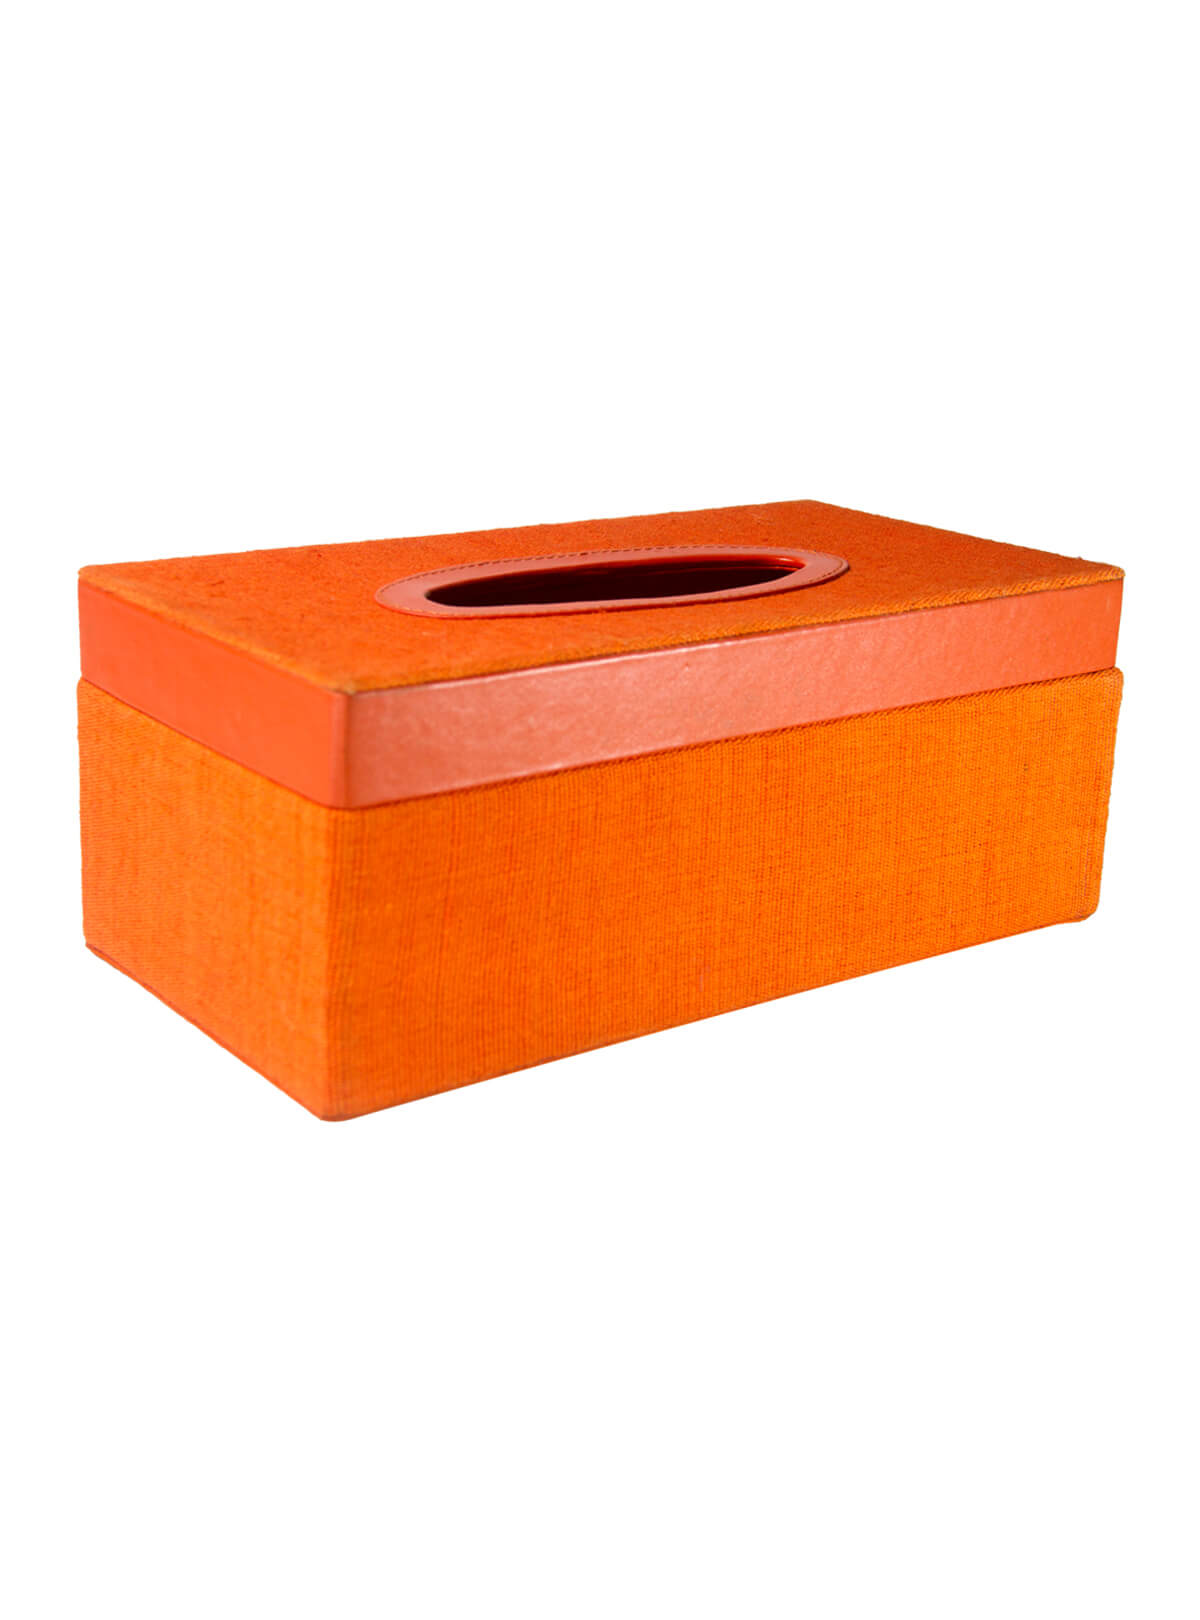 Fire Orange Tissue Box